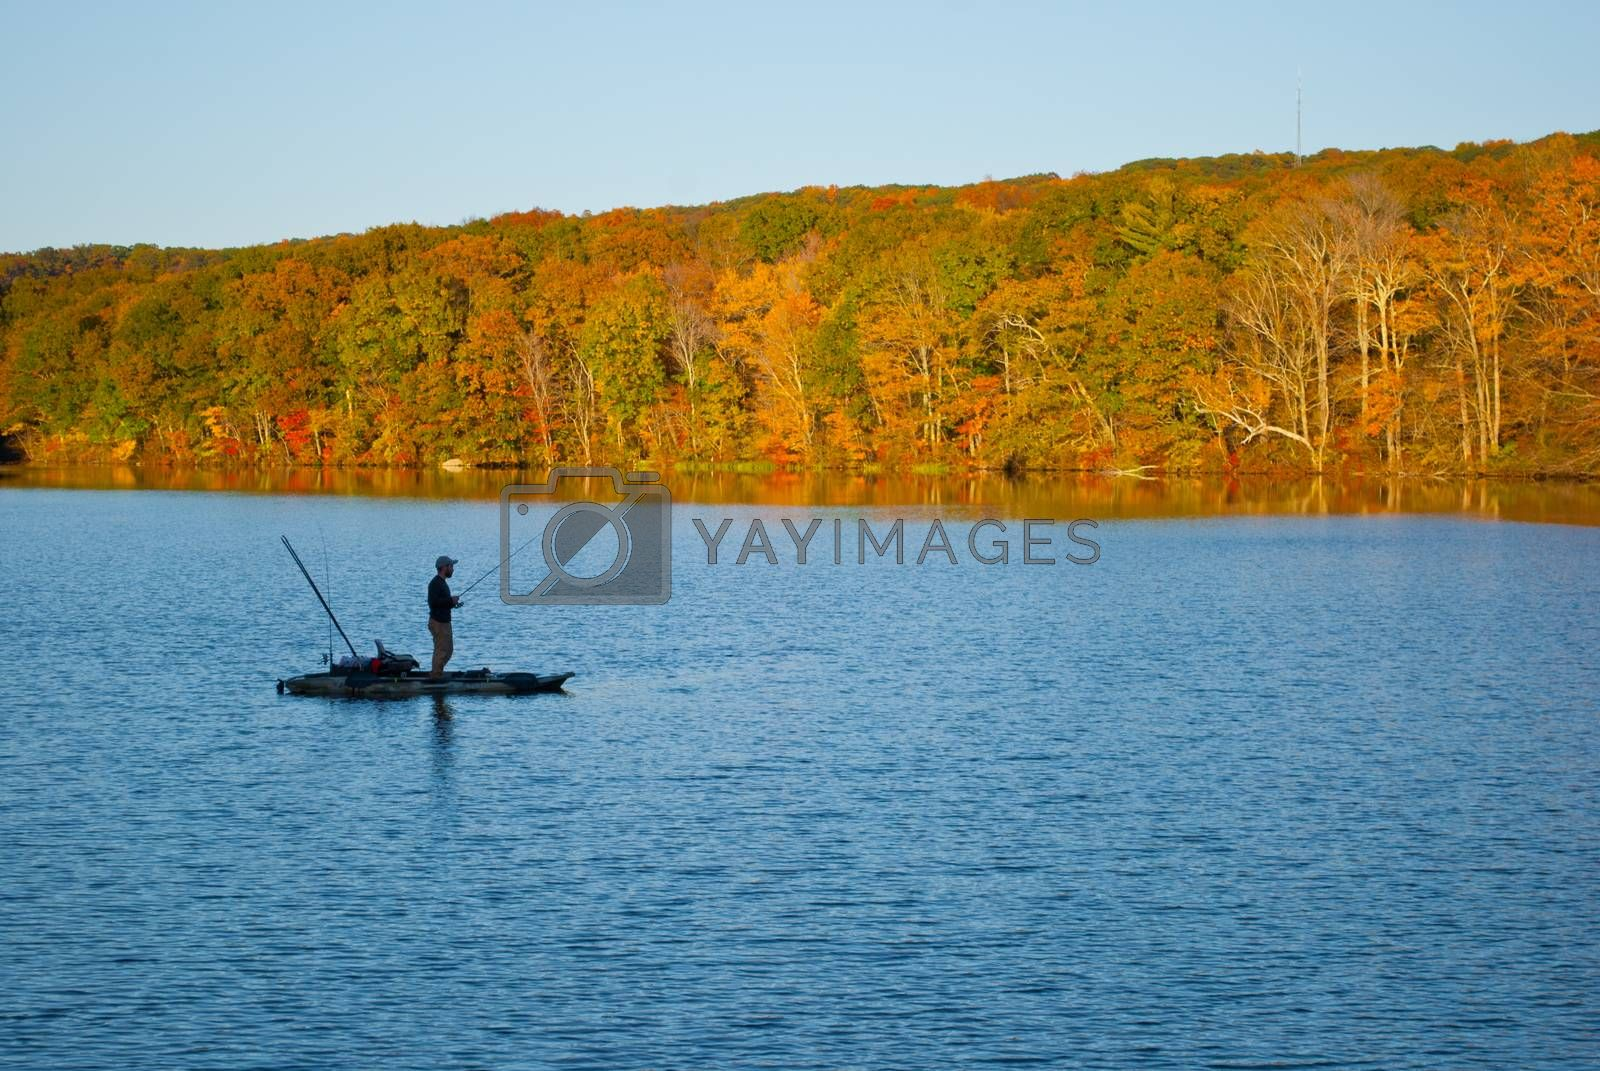 Fishrman in Risley Park Vernon Connecticut during autumn fall with beautfull October foliage